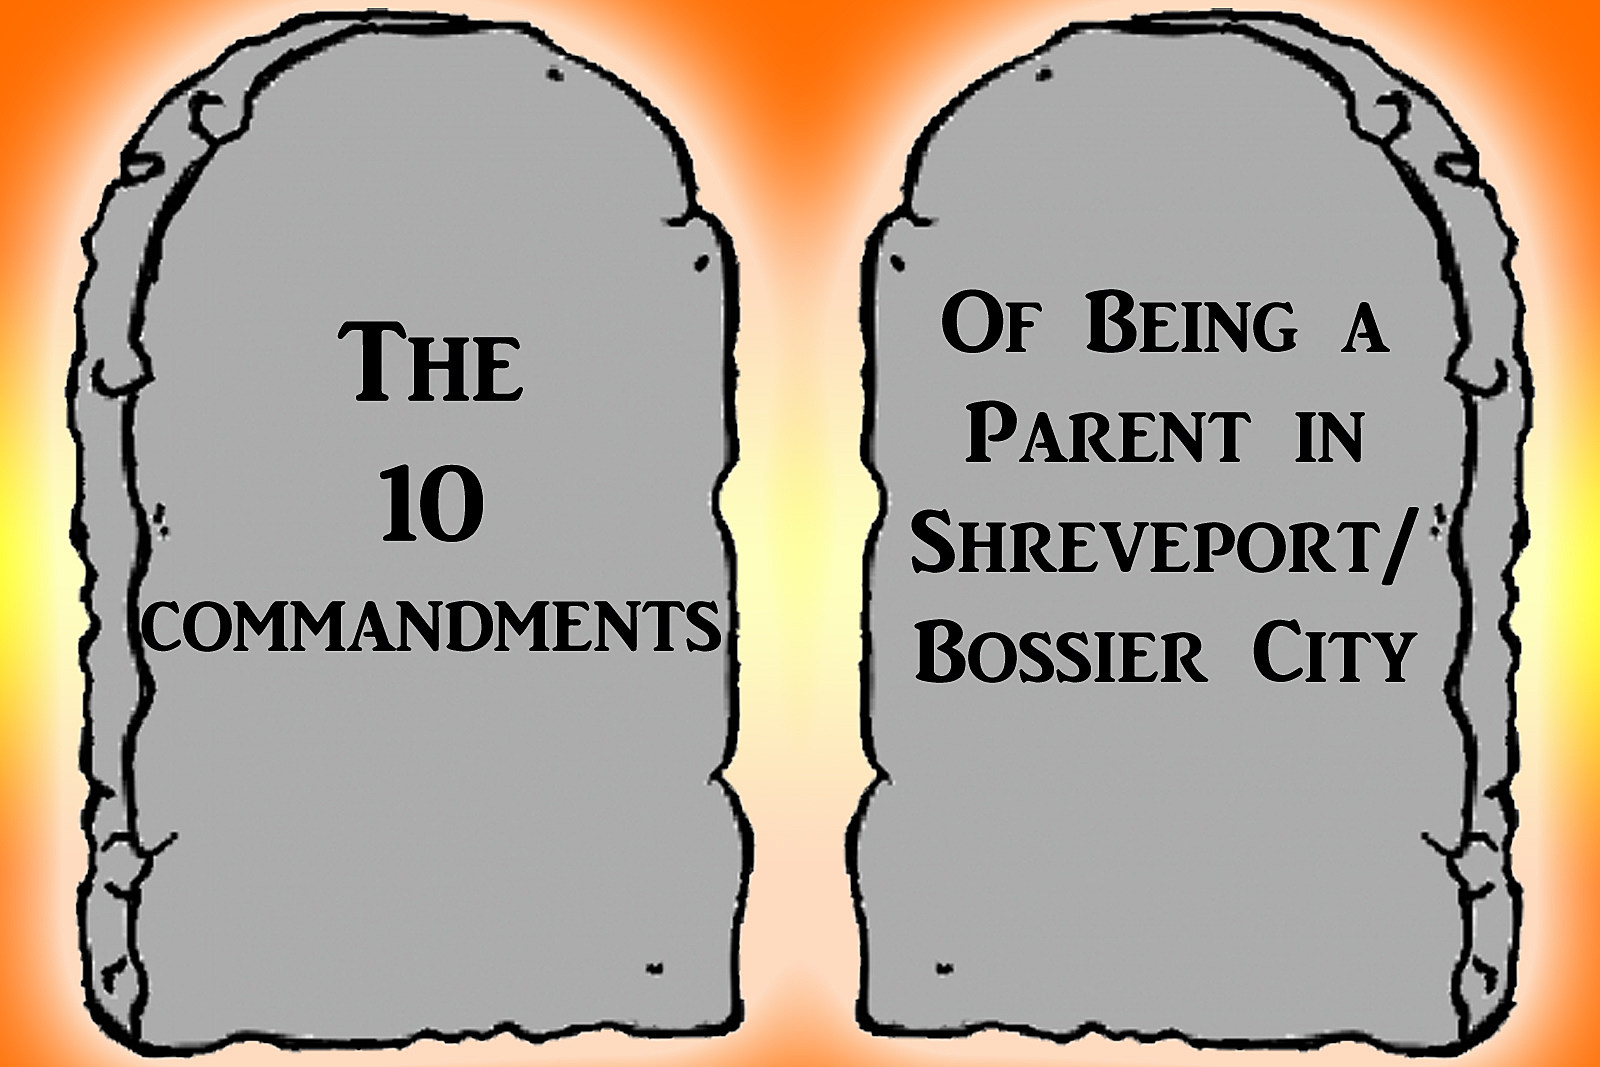 10 commandments image